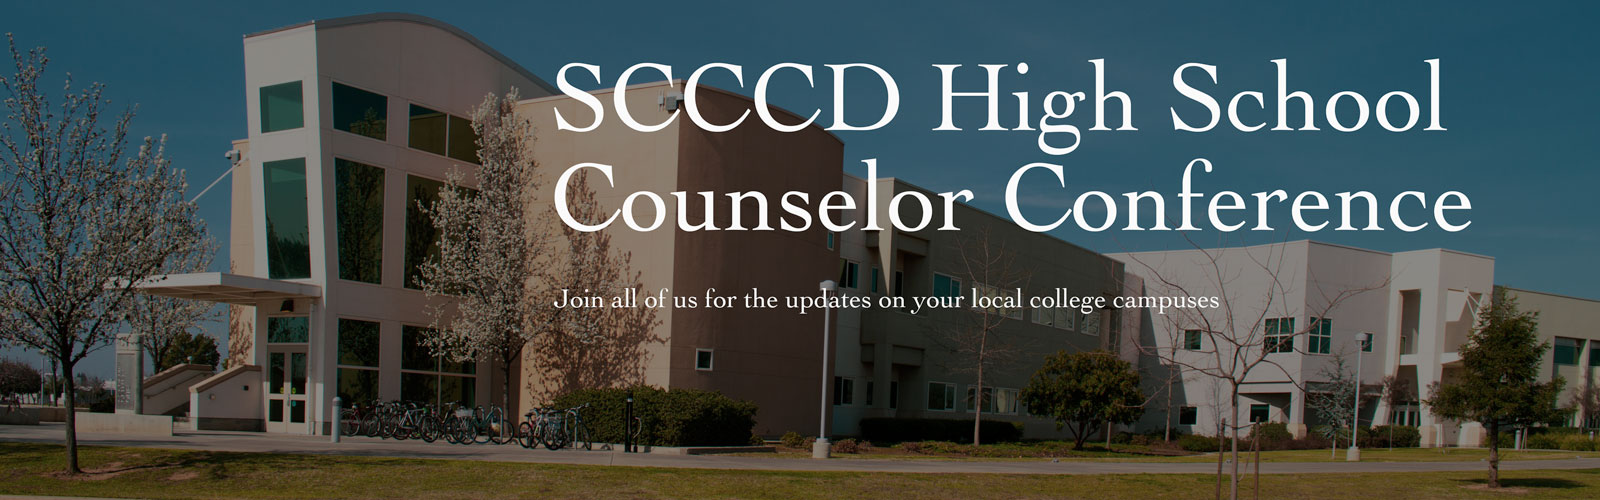 High School Counselor Conference